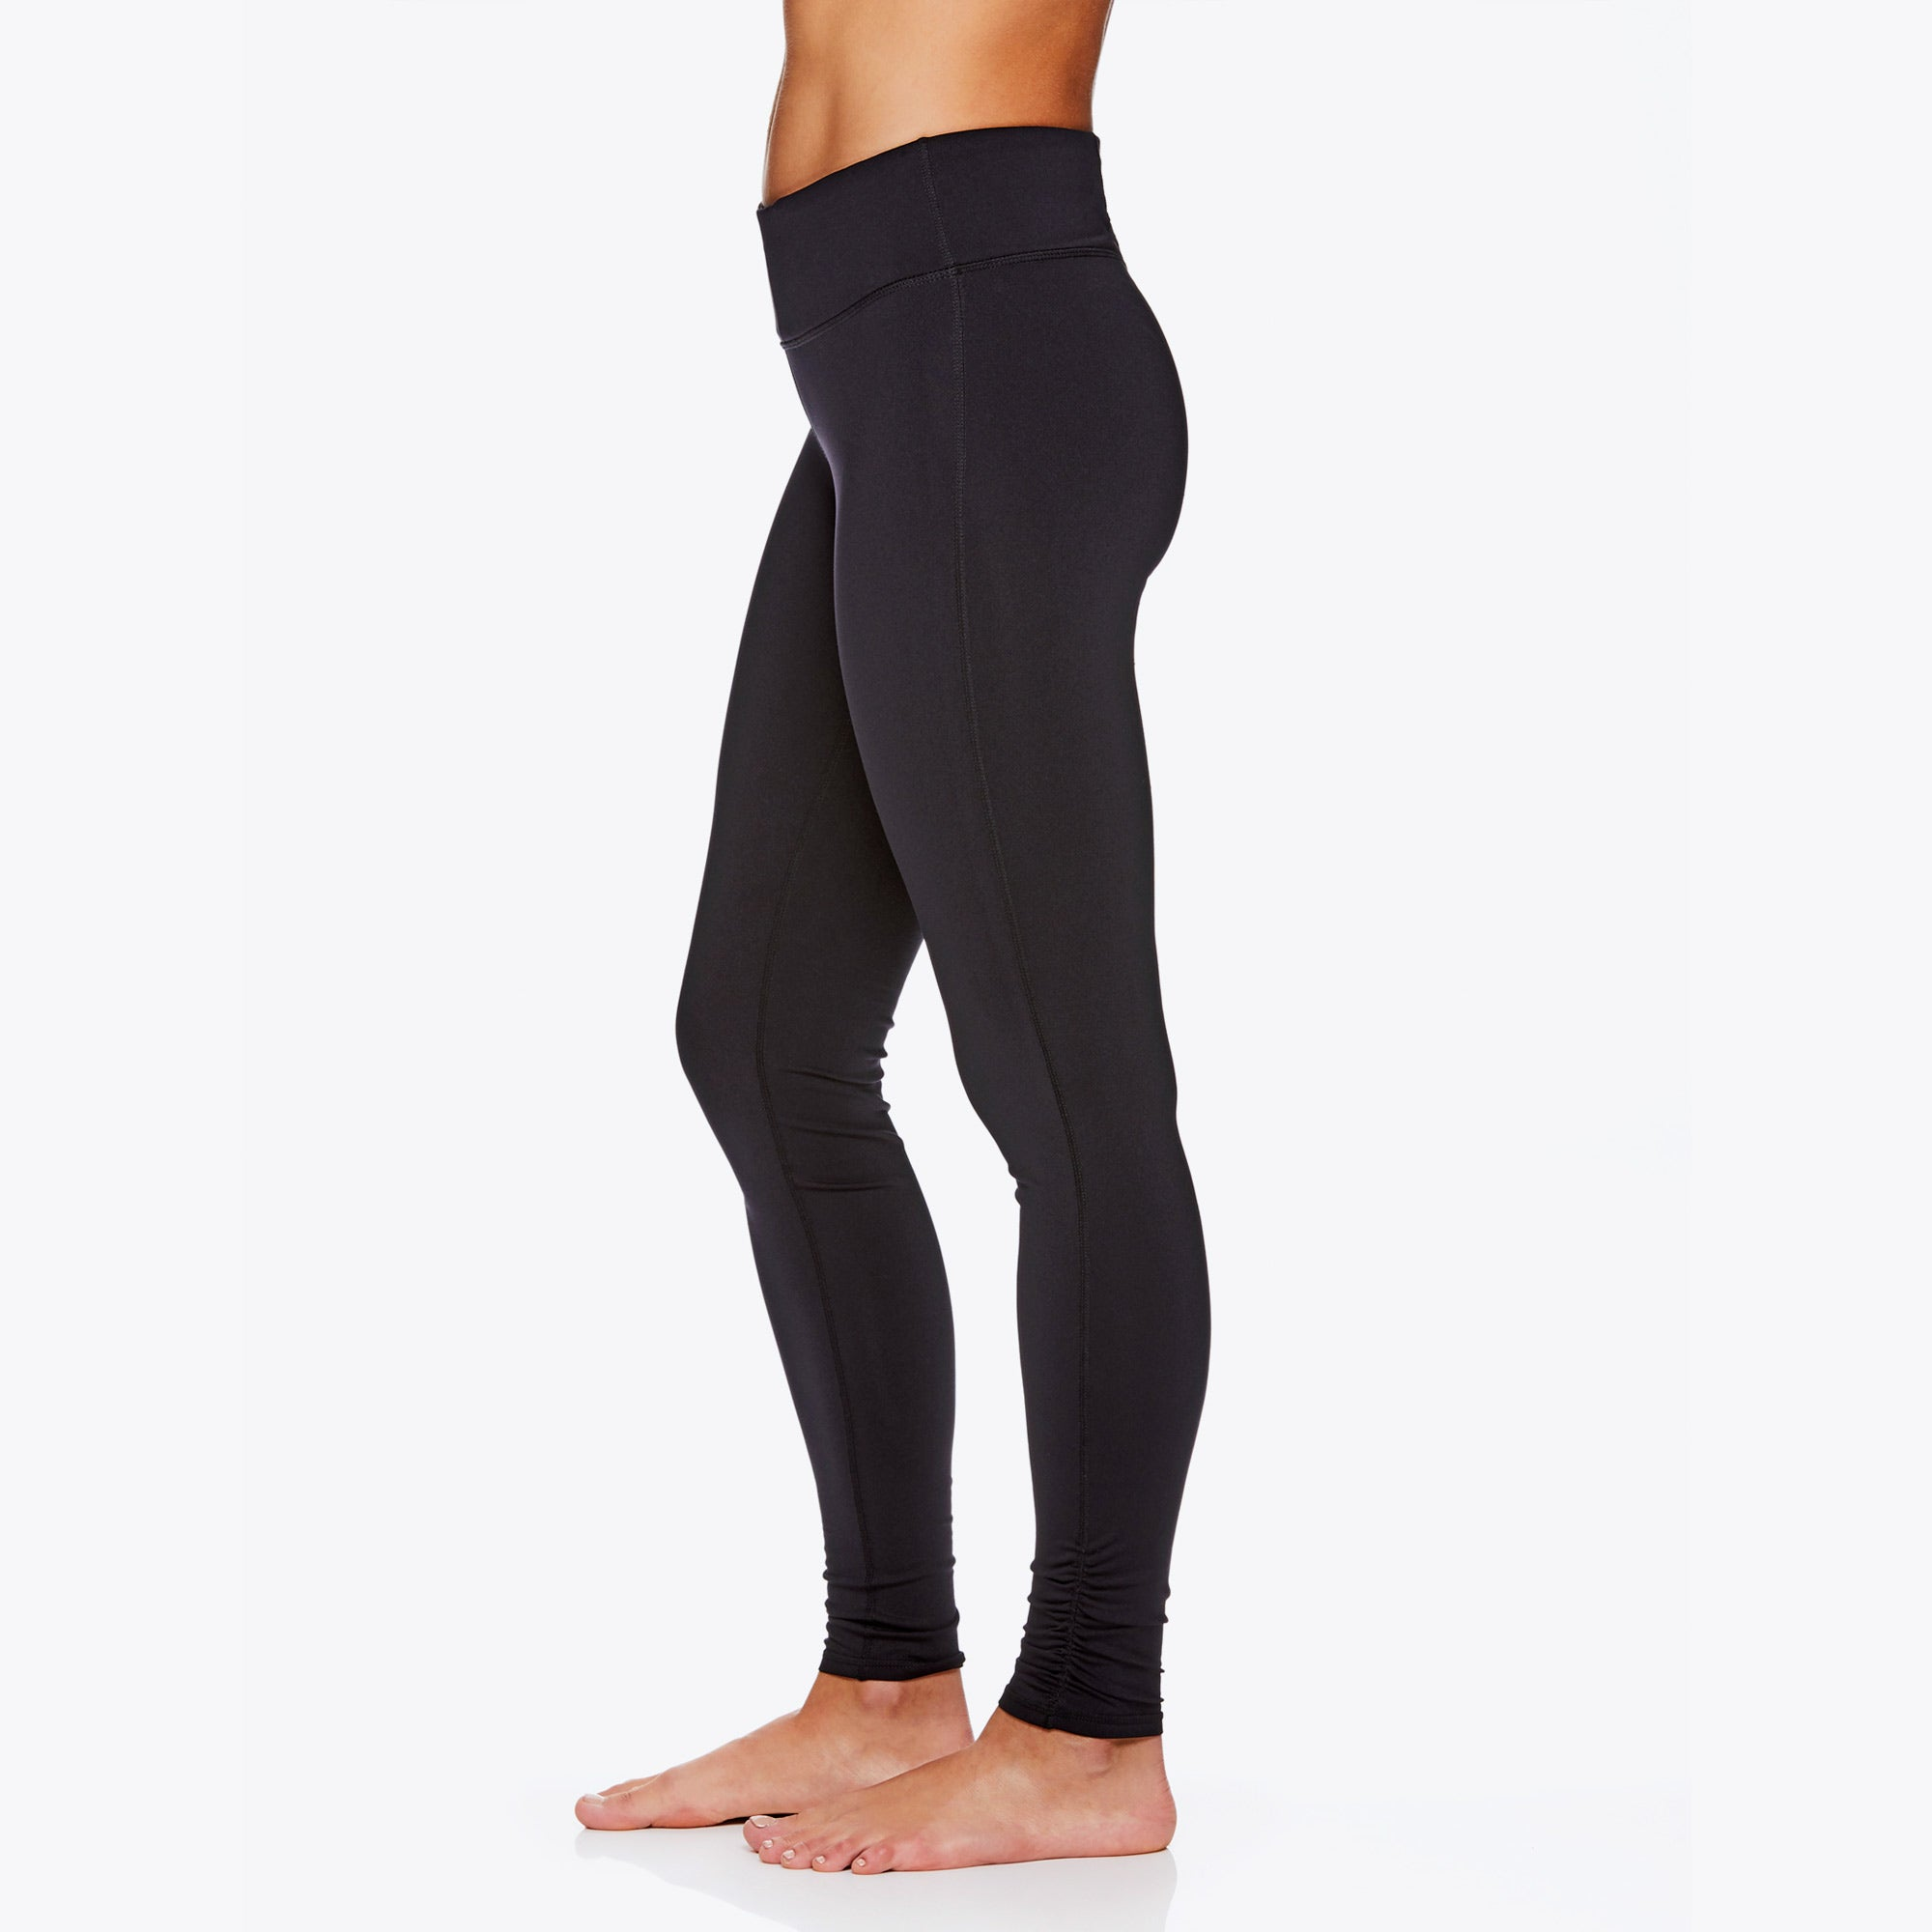 run shoes meet Super discount OM Yoga Legging